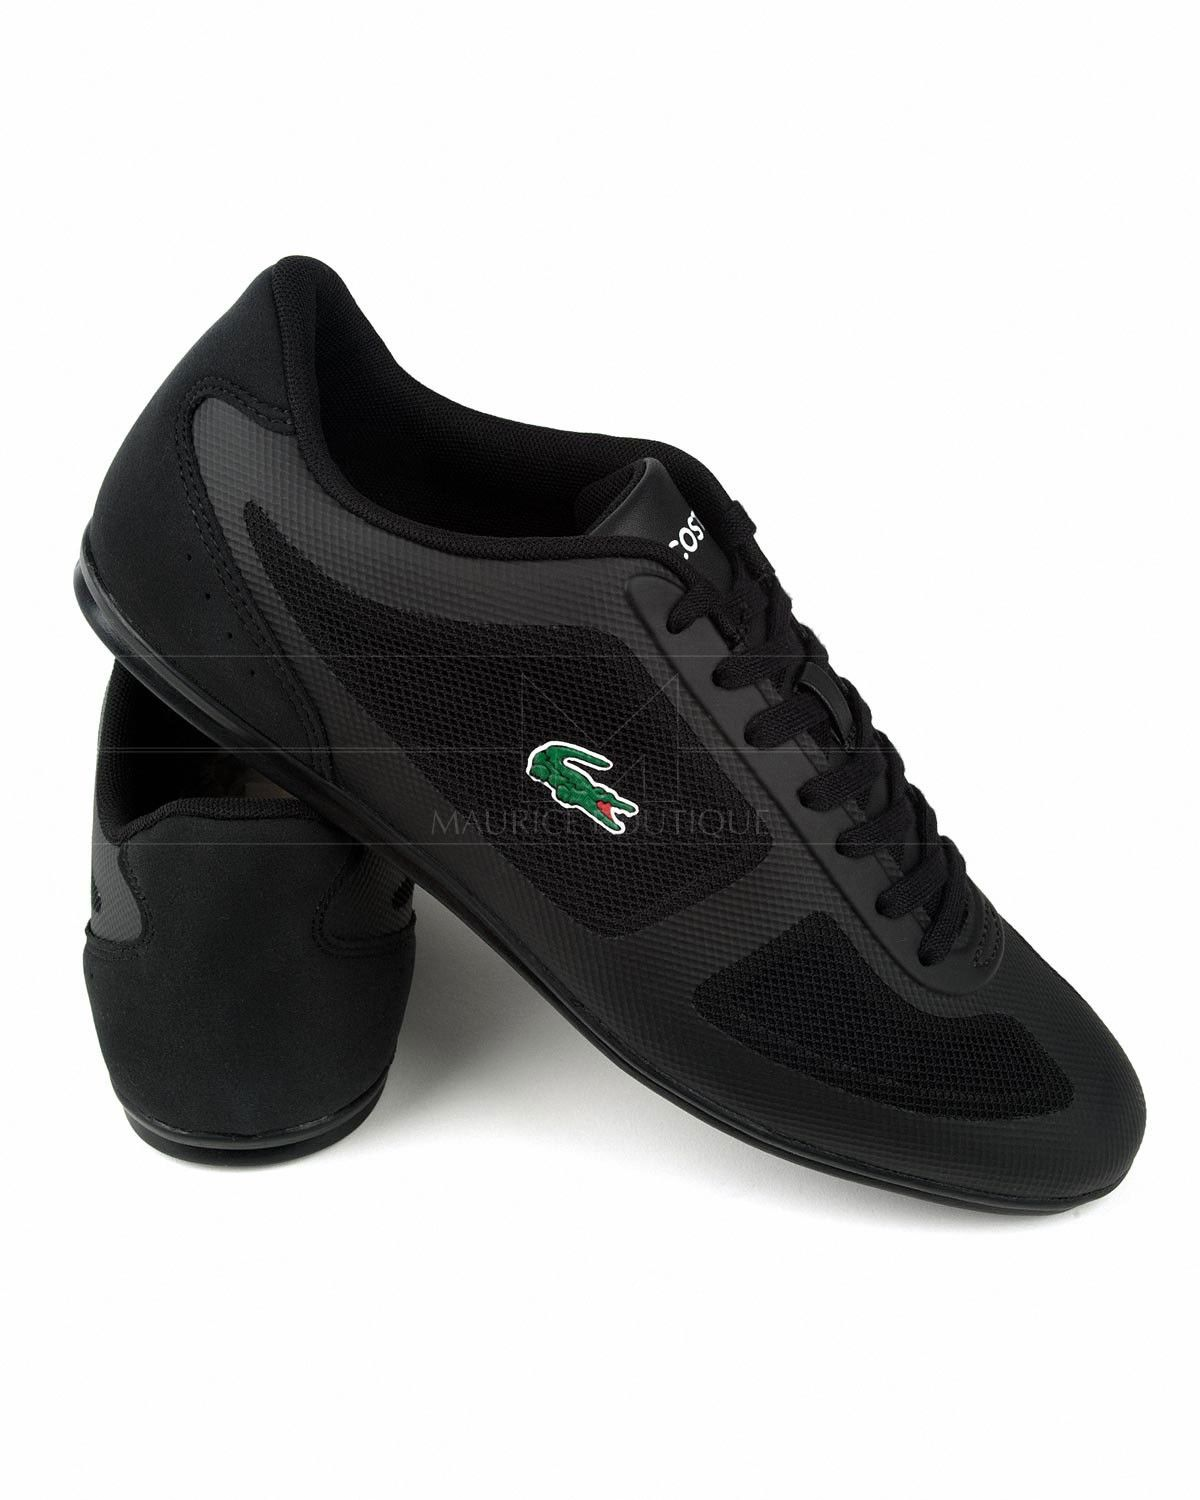 b47a2edac2da Zapatillas Lacoste Blancas - Avance in 2019 | Rubber shoes ...